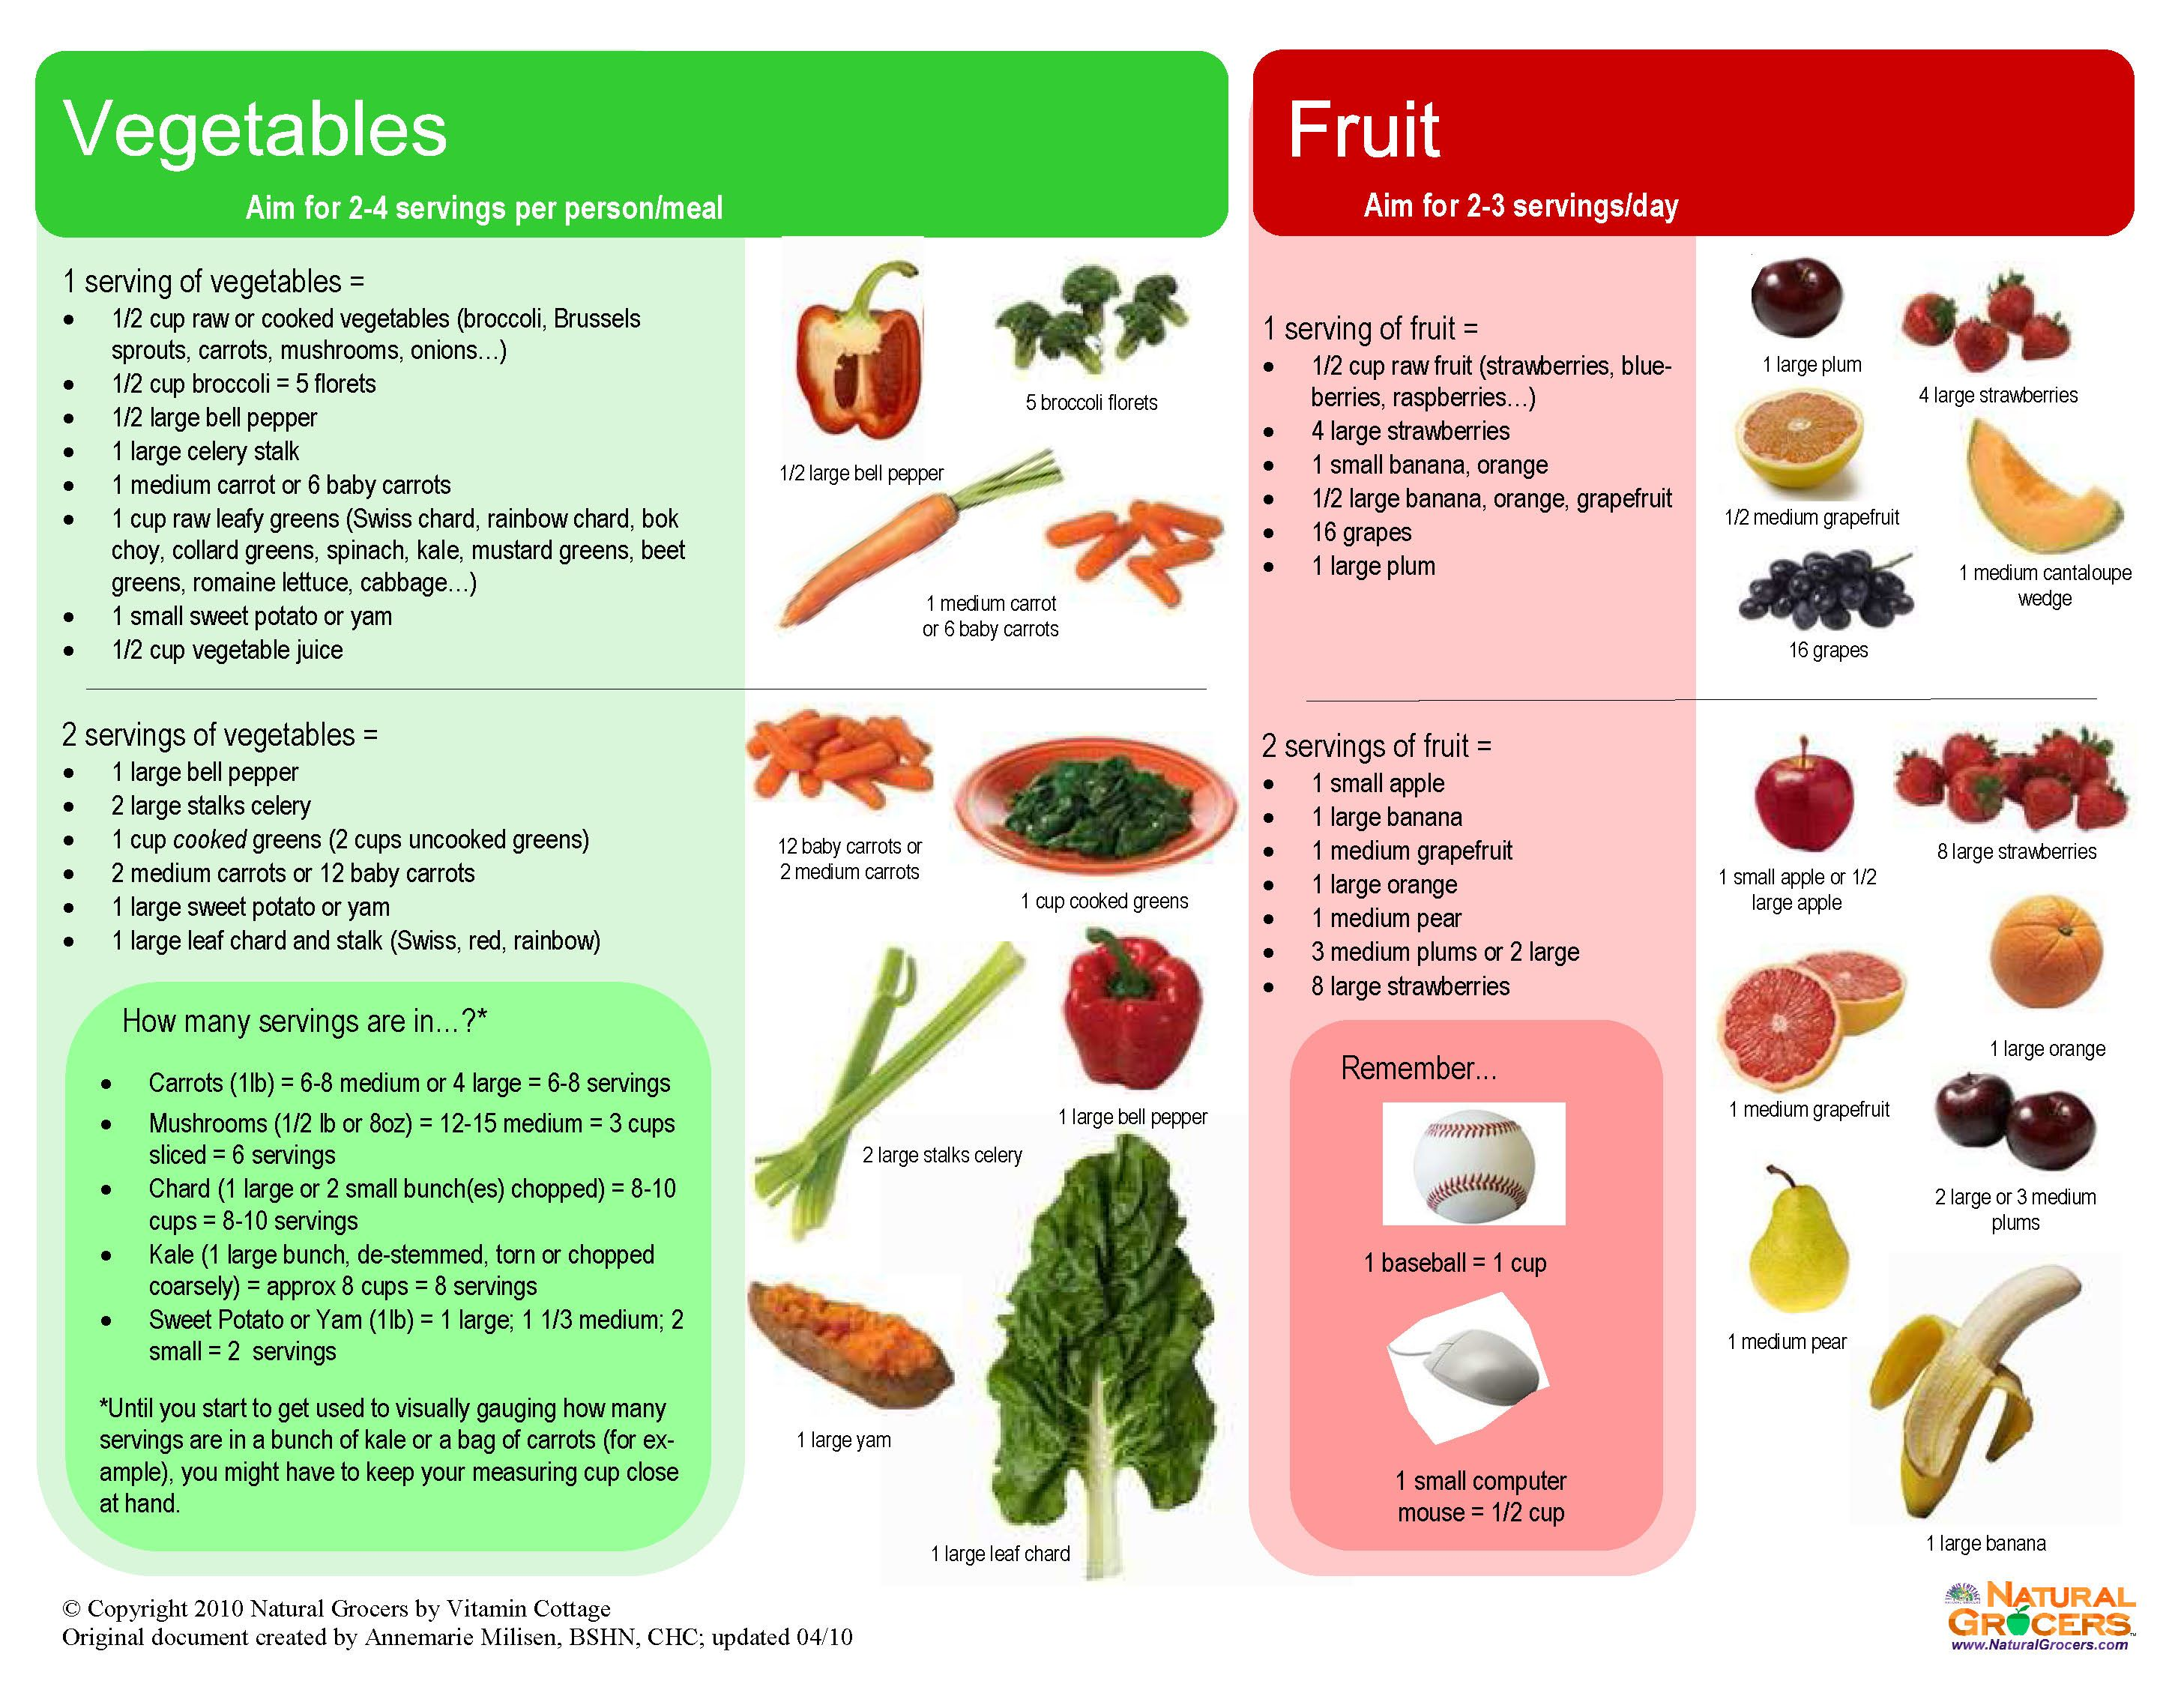 Pin by c carlic on FACS in 2019 | Vegetable serving size